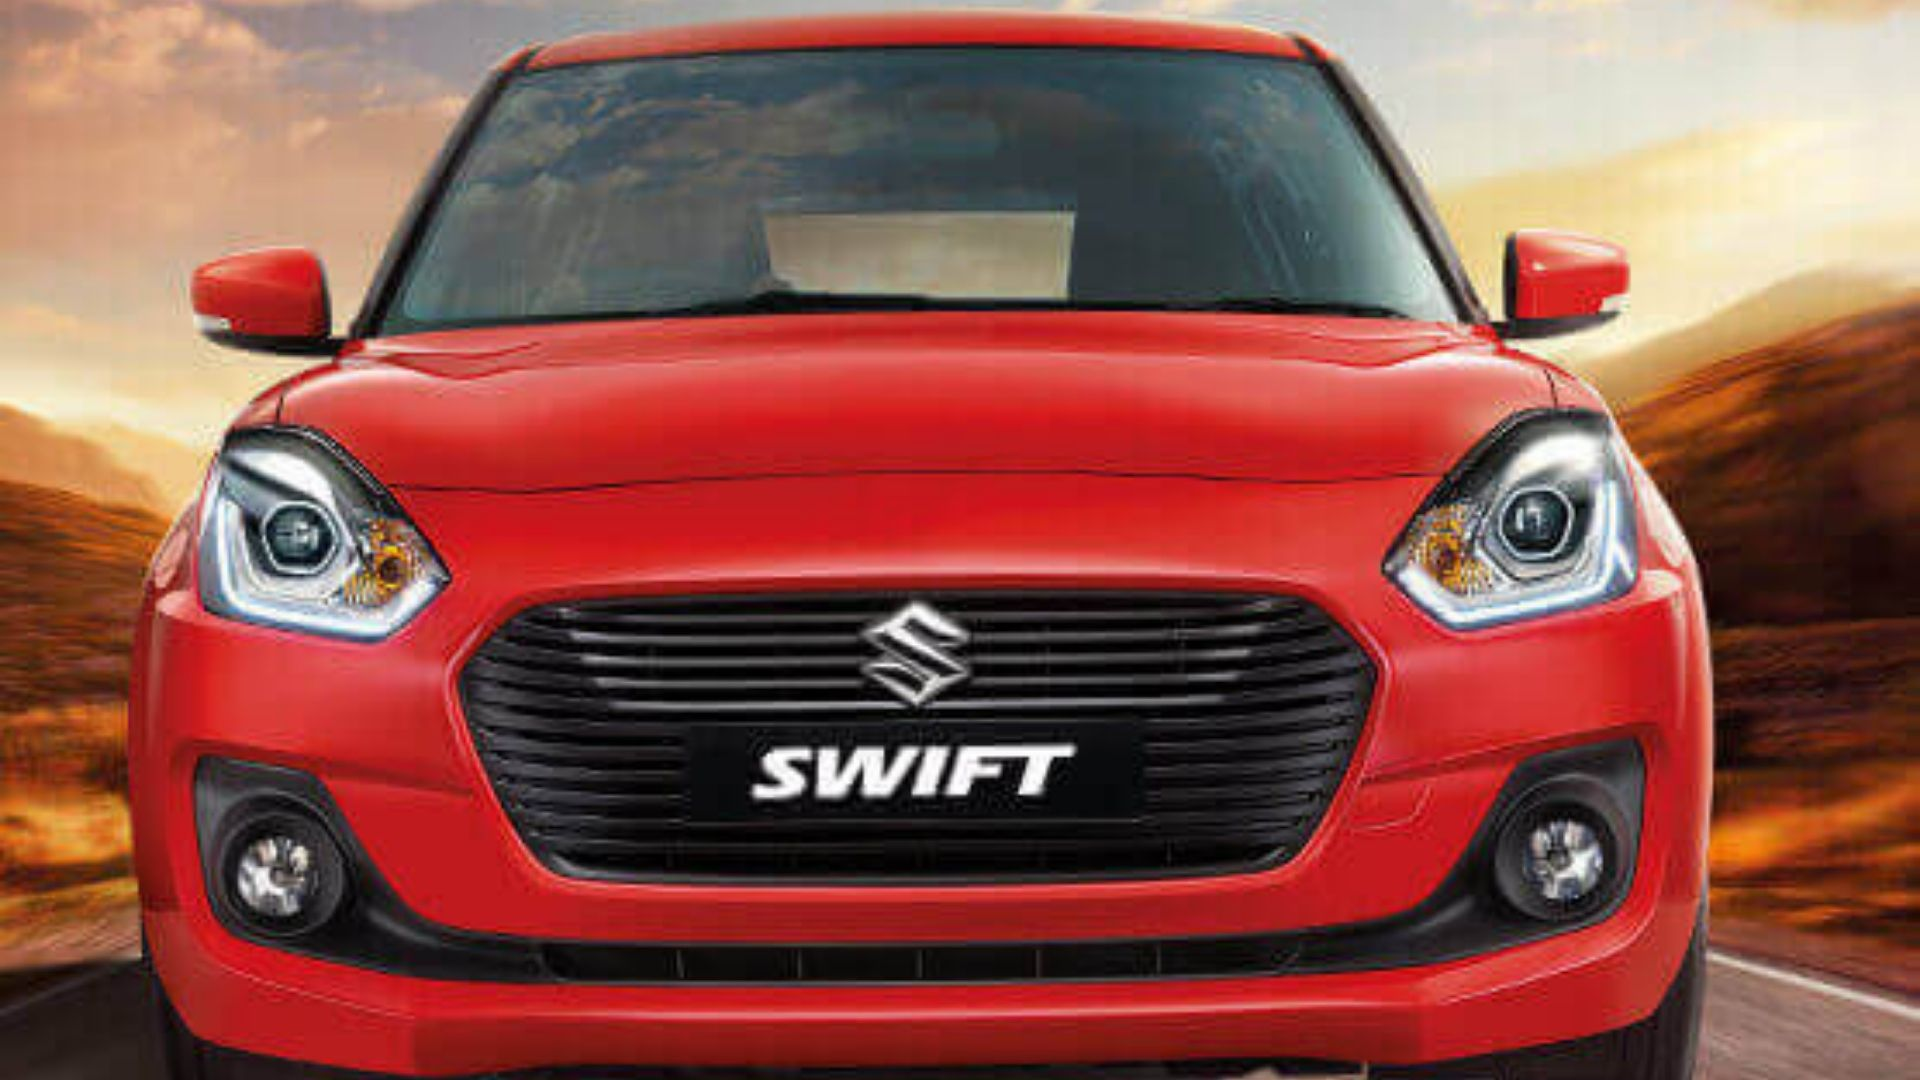 Maruti Suzuki Swift Features Deals